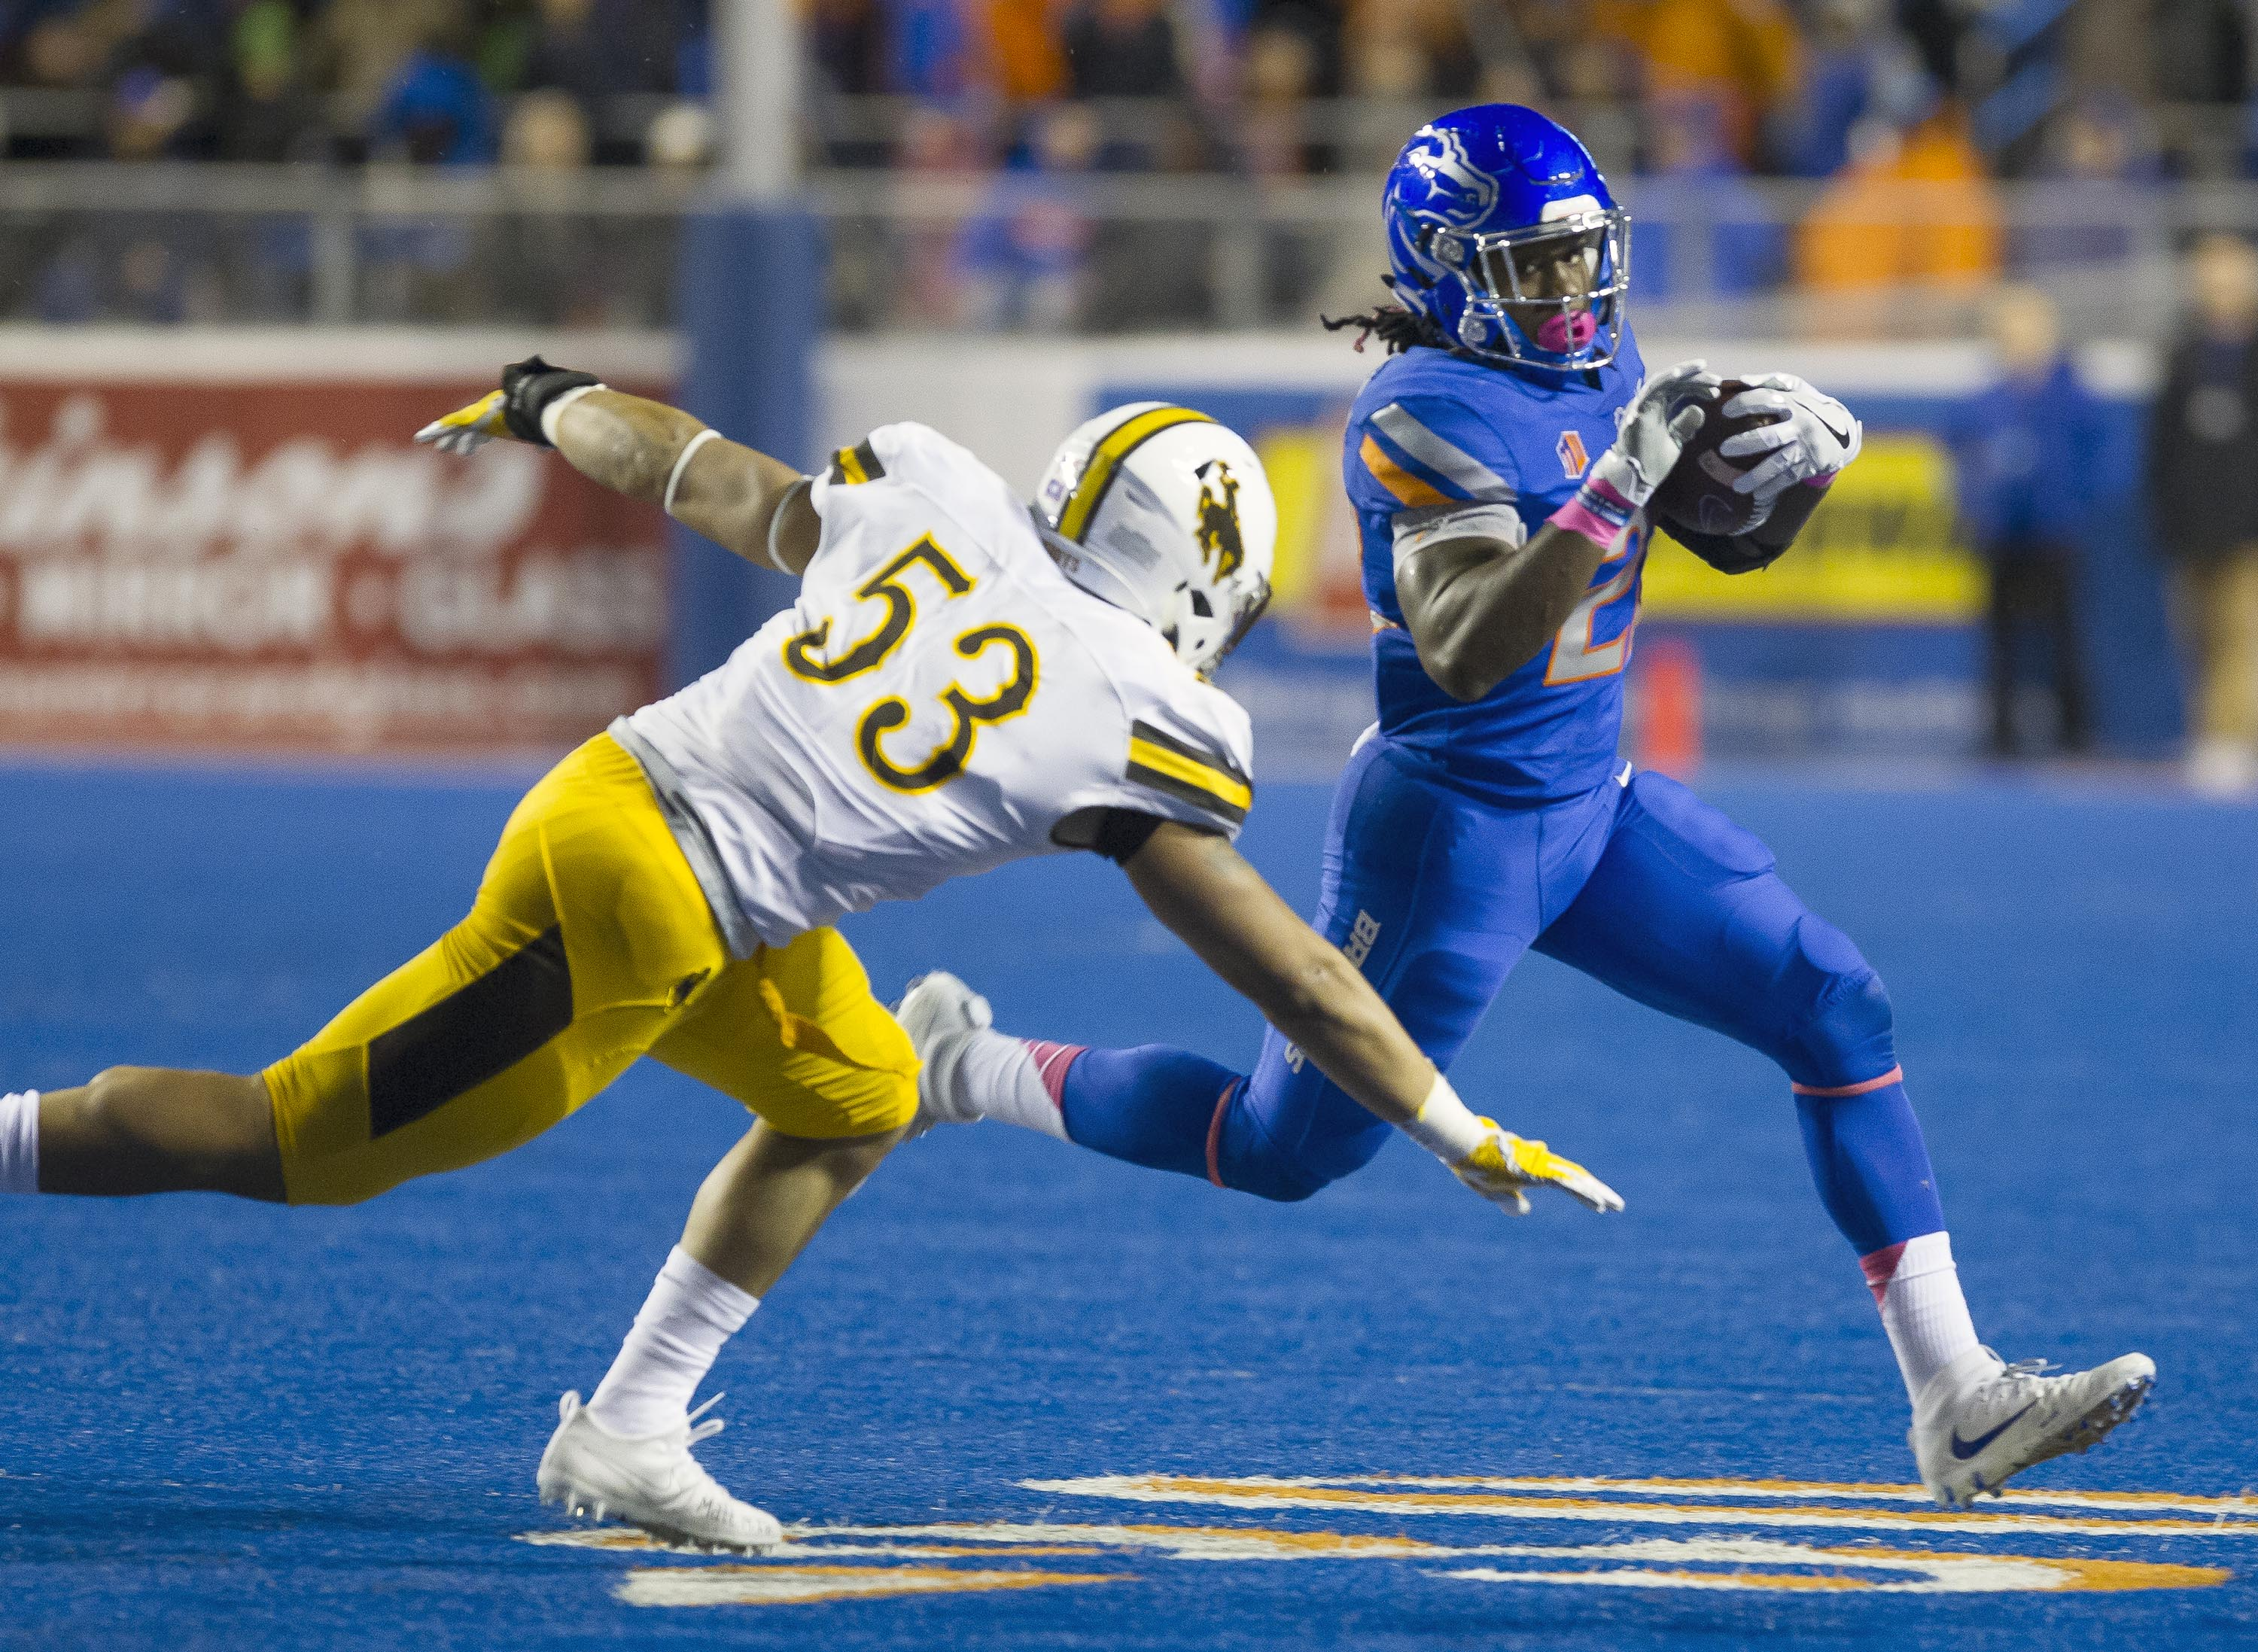 Wyoming at Boise State